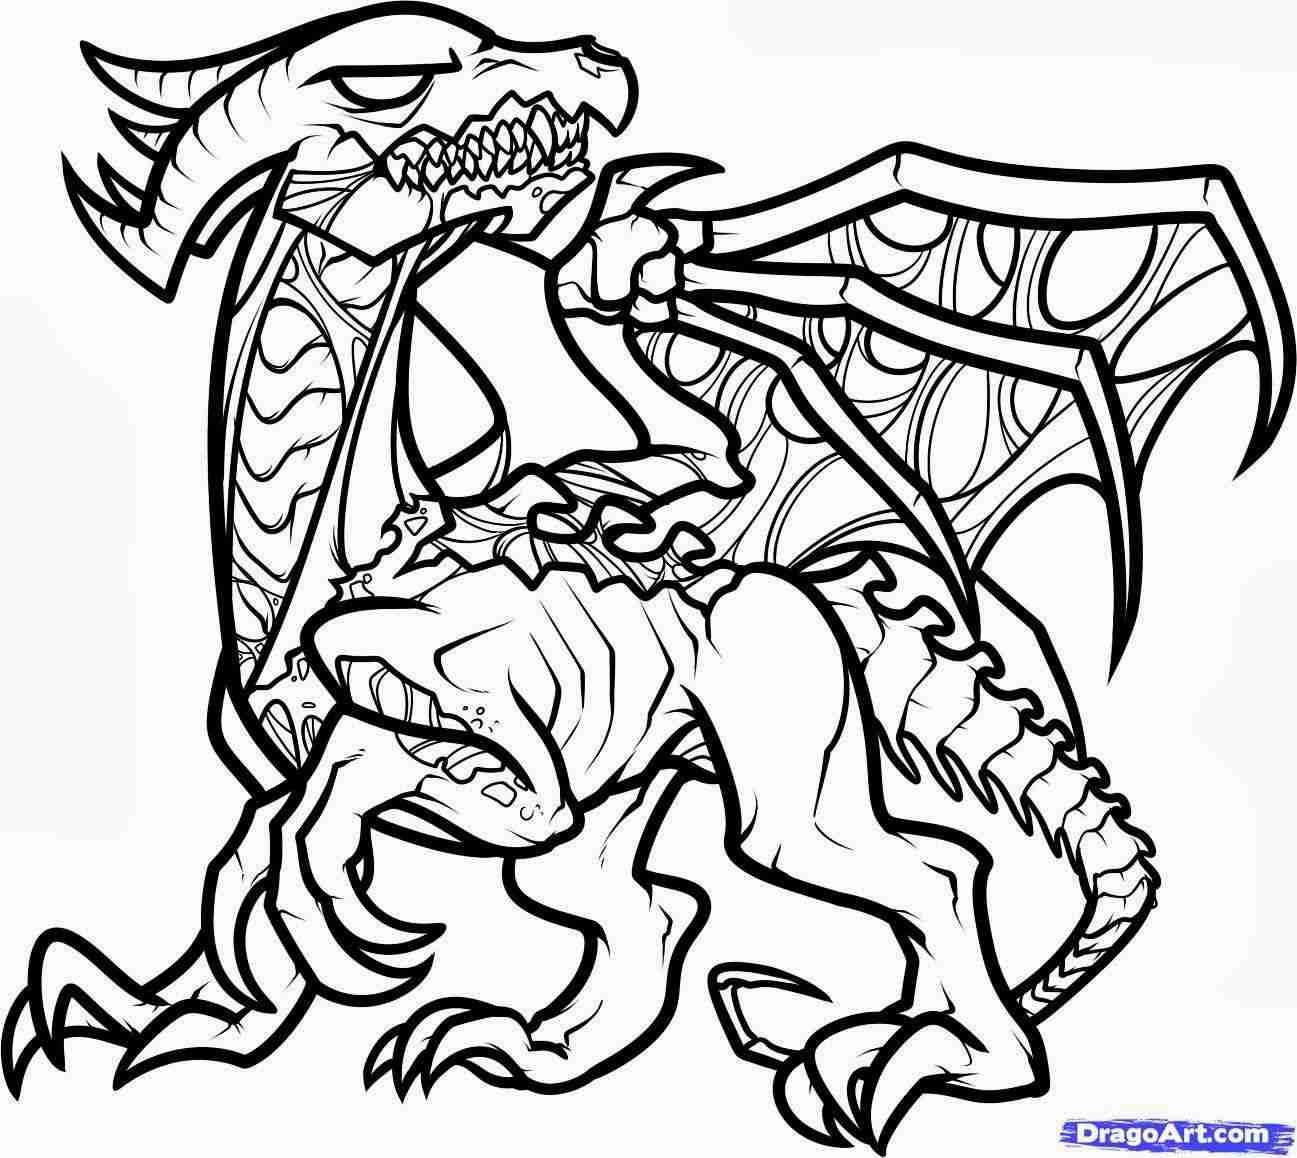 minecraft ender dragon coloring sheet tooning for tots volume 21 getting mousy art in mad lines dragon ender minecraft sheet coloring